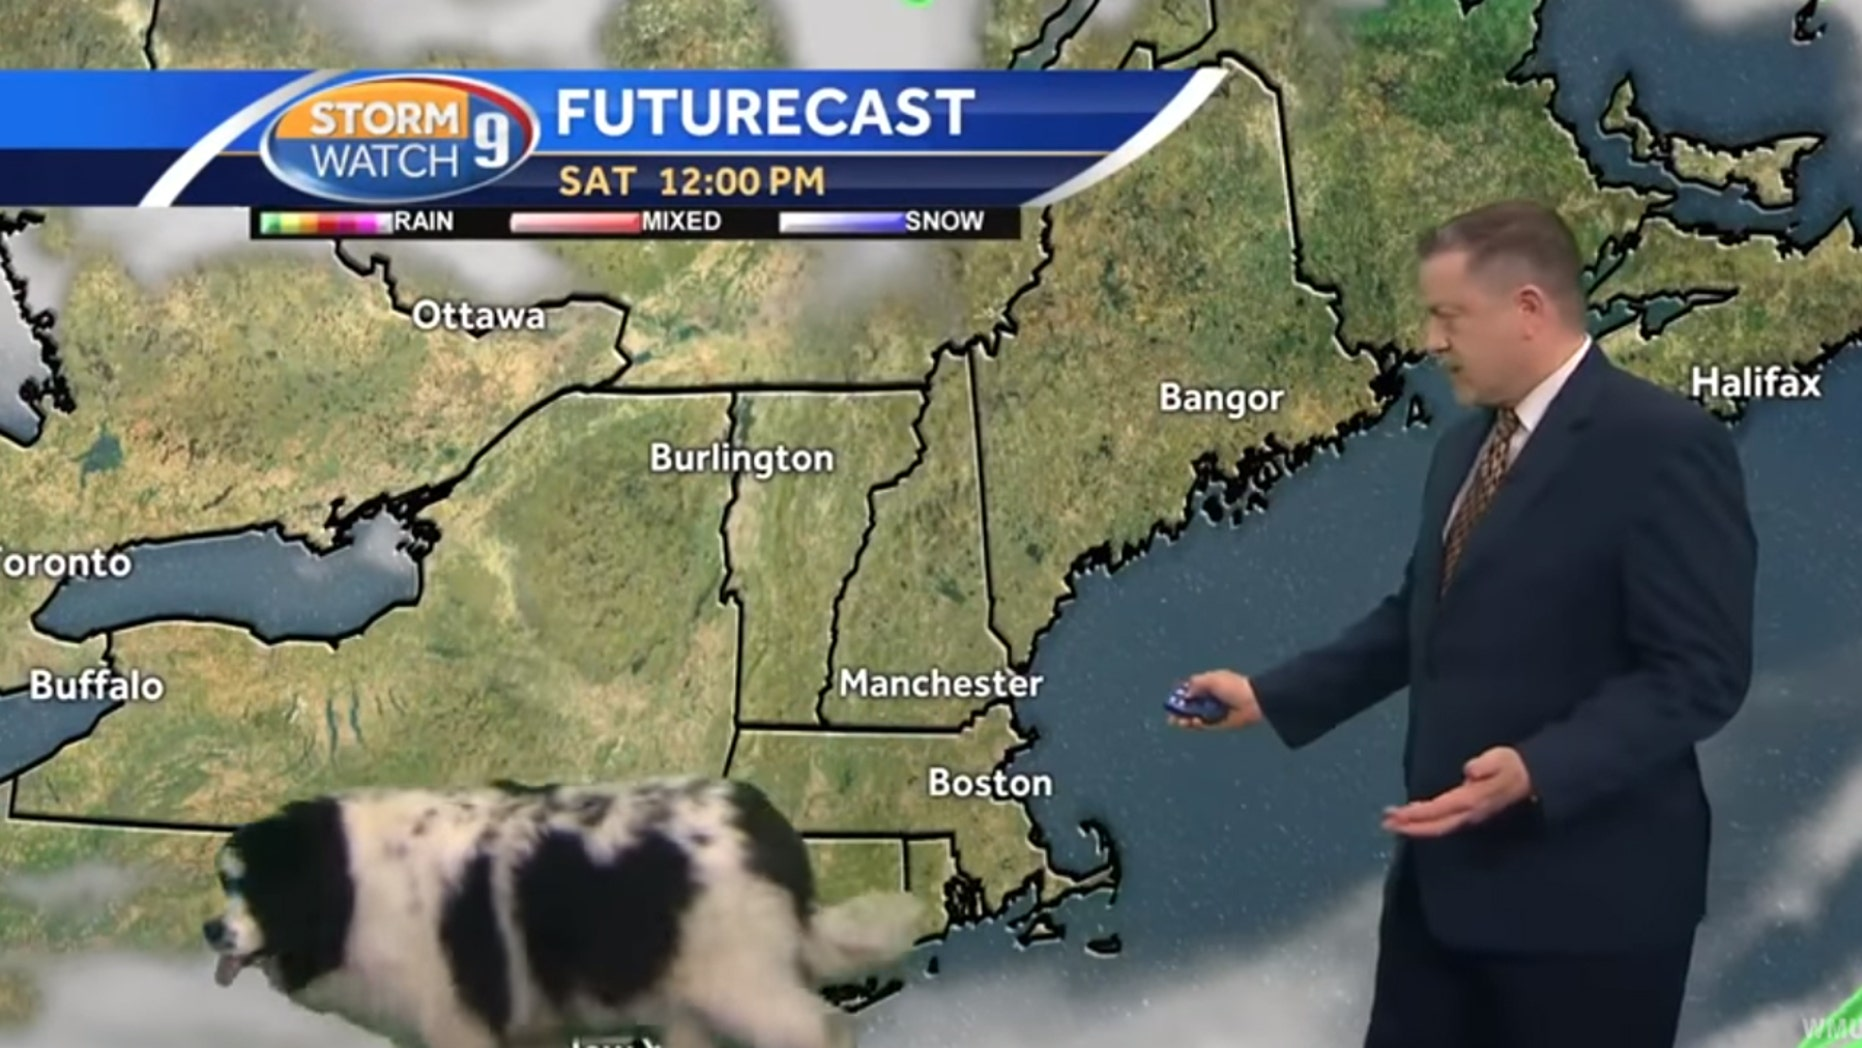 Dog Strolls Through Live Weather Forecast In New Hampshire Fox News